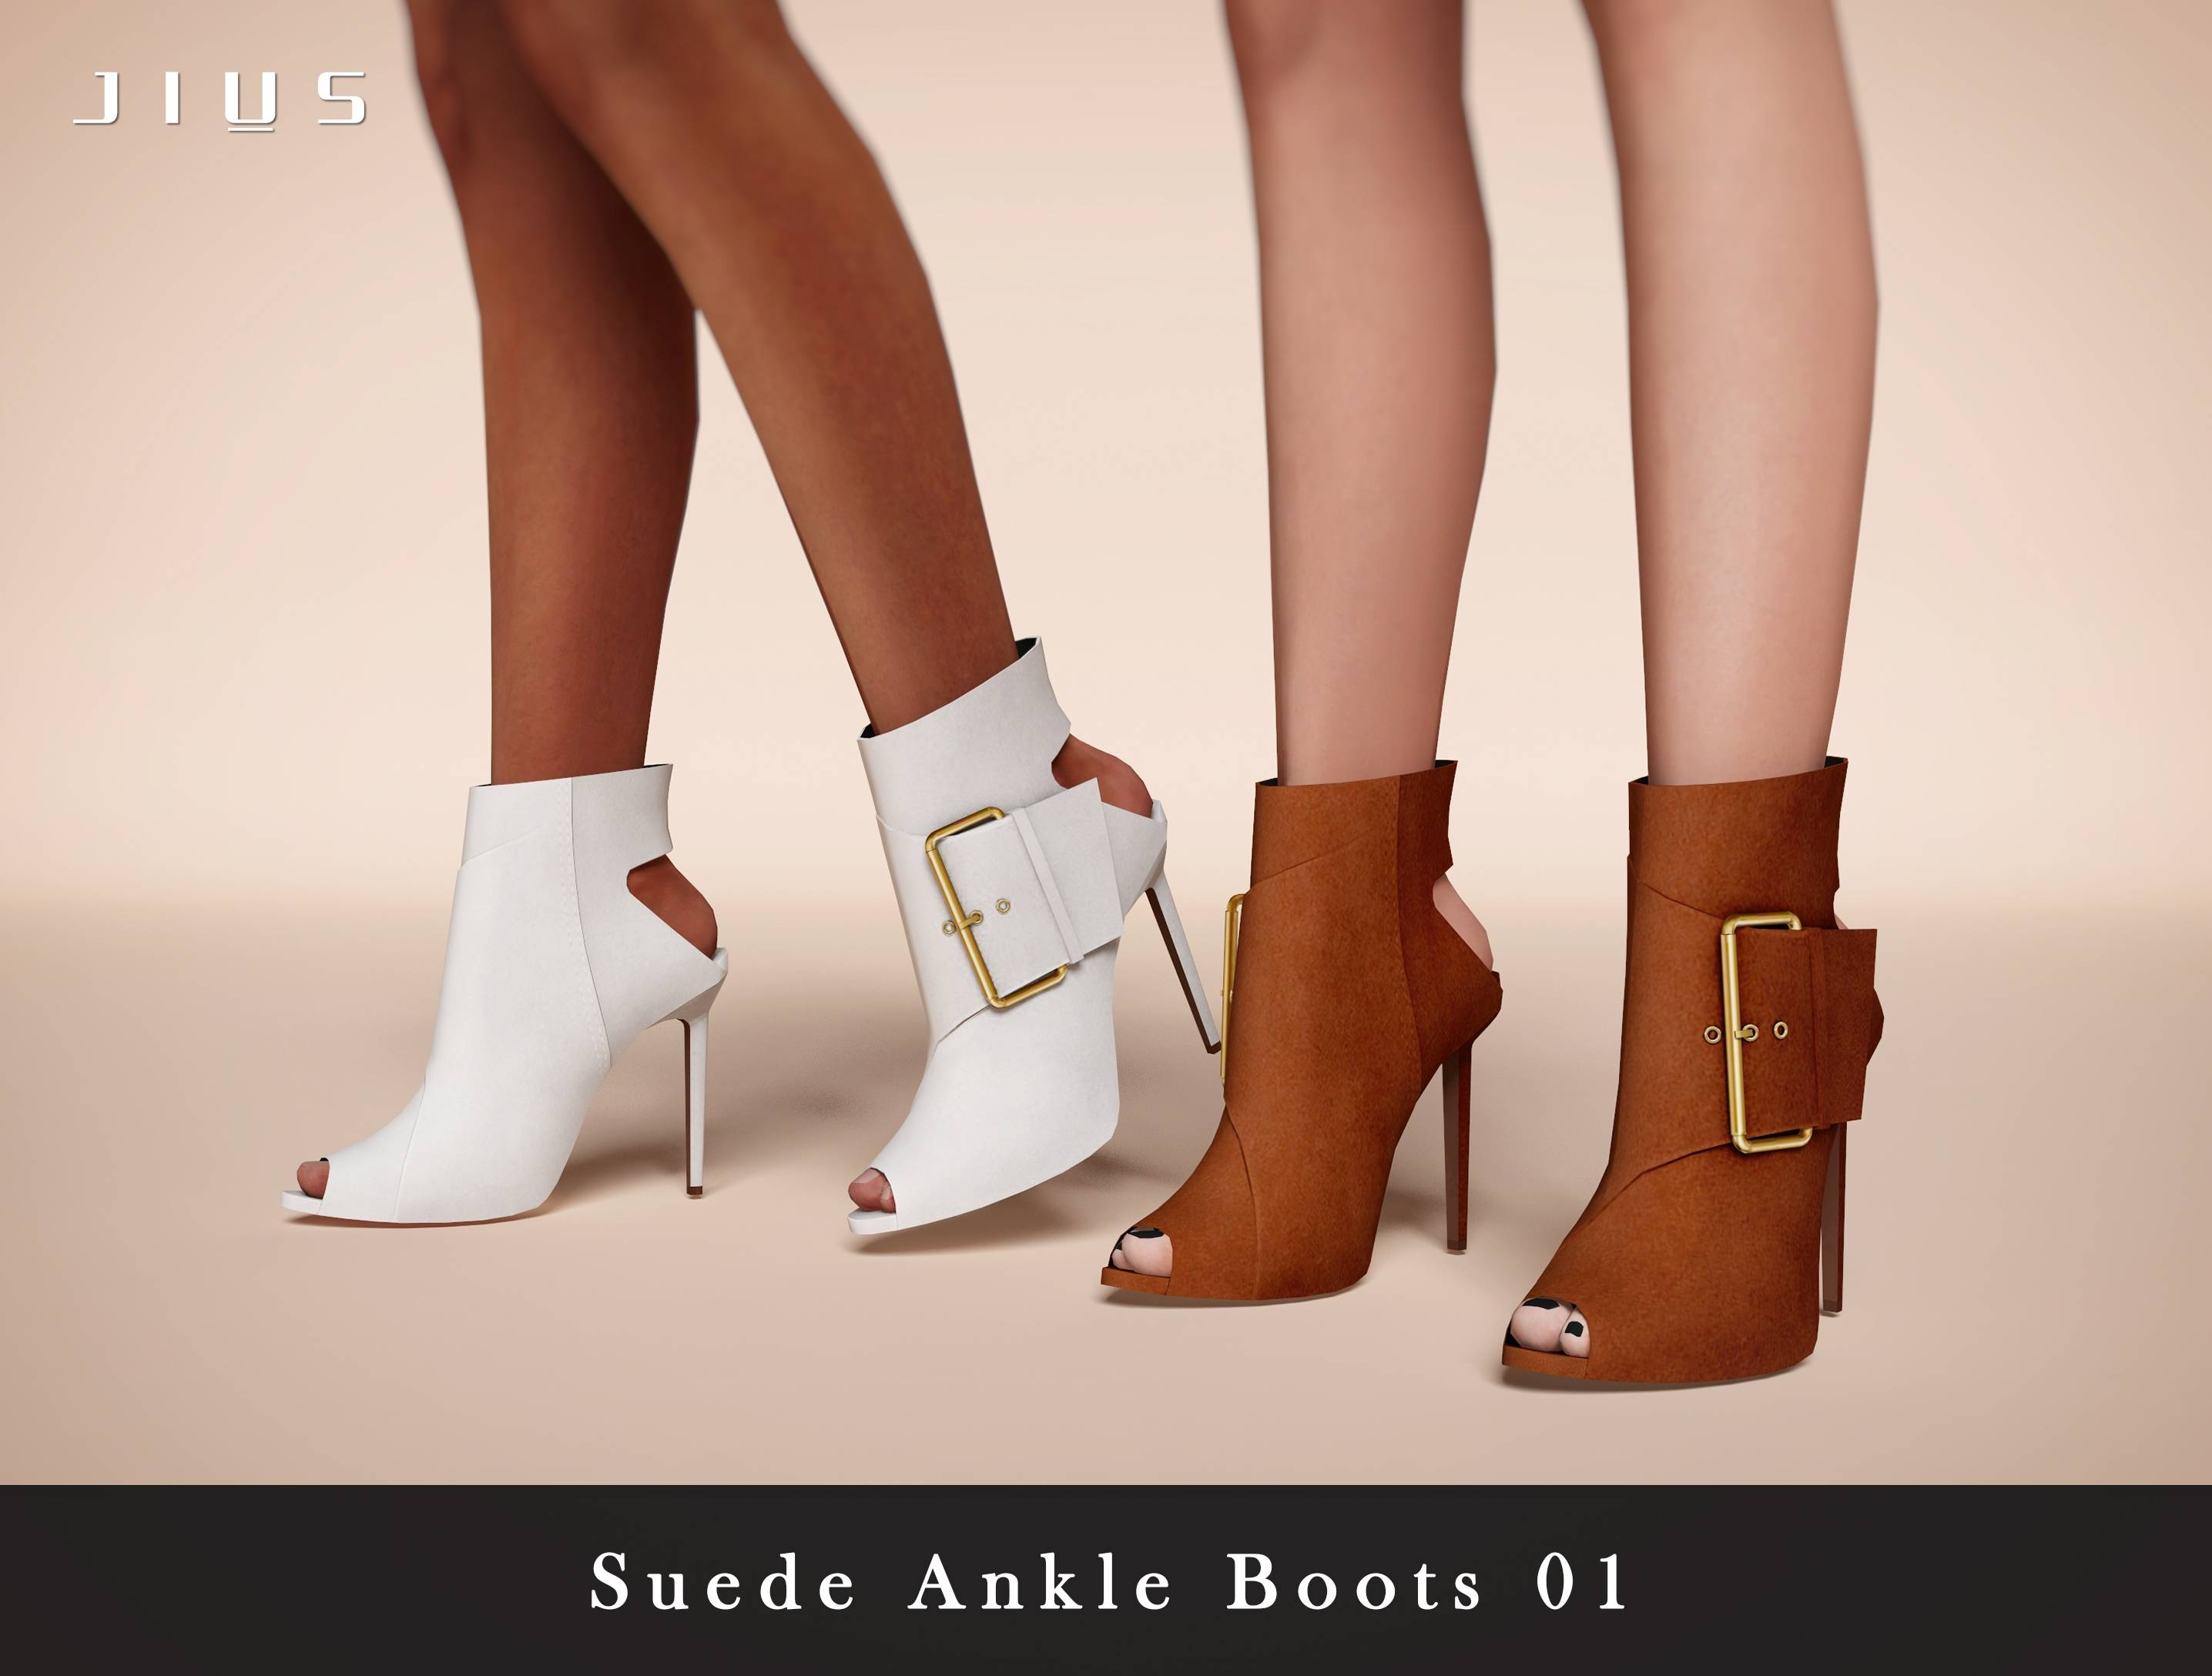 Ботильоны - Suede Ankle Boots 01